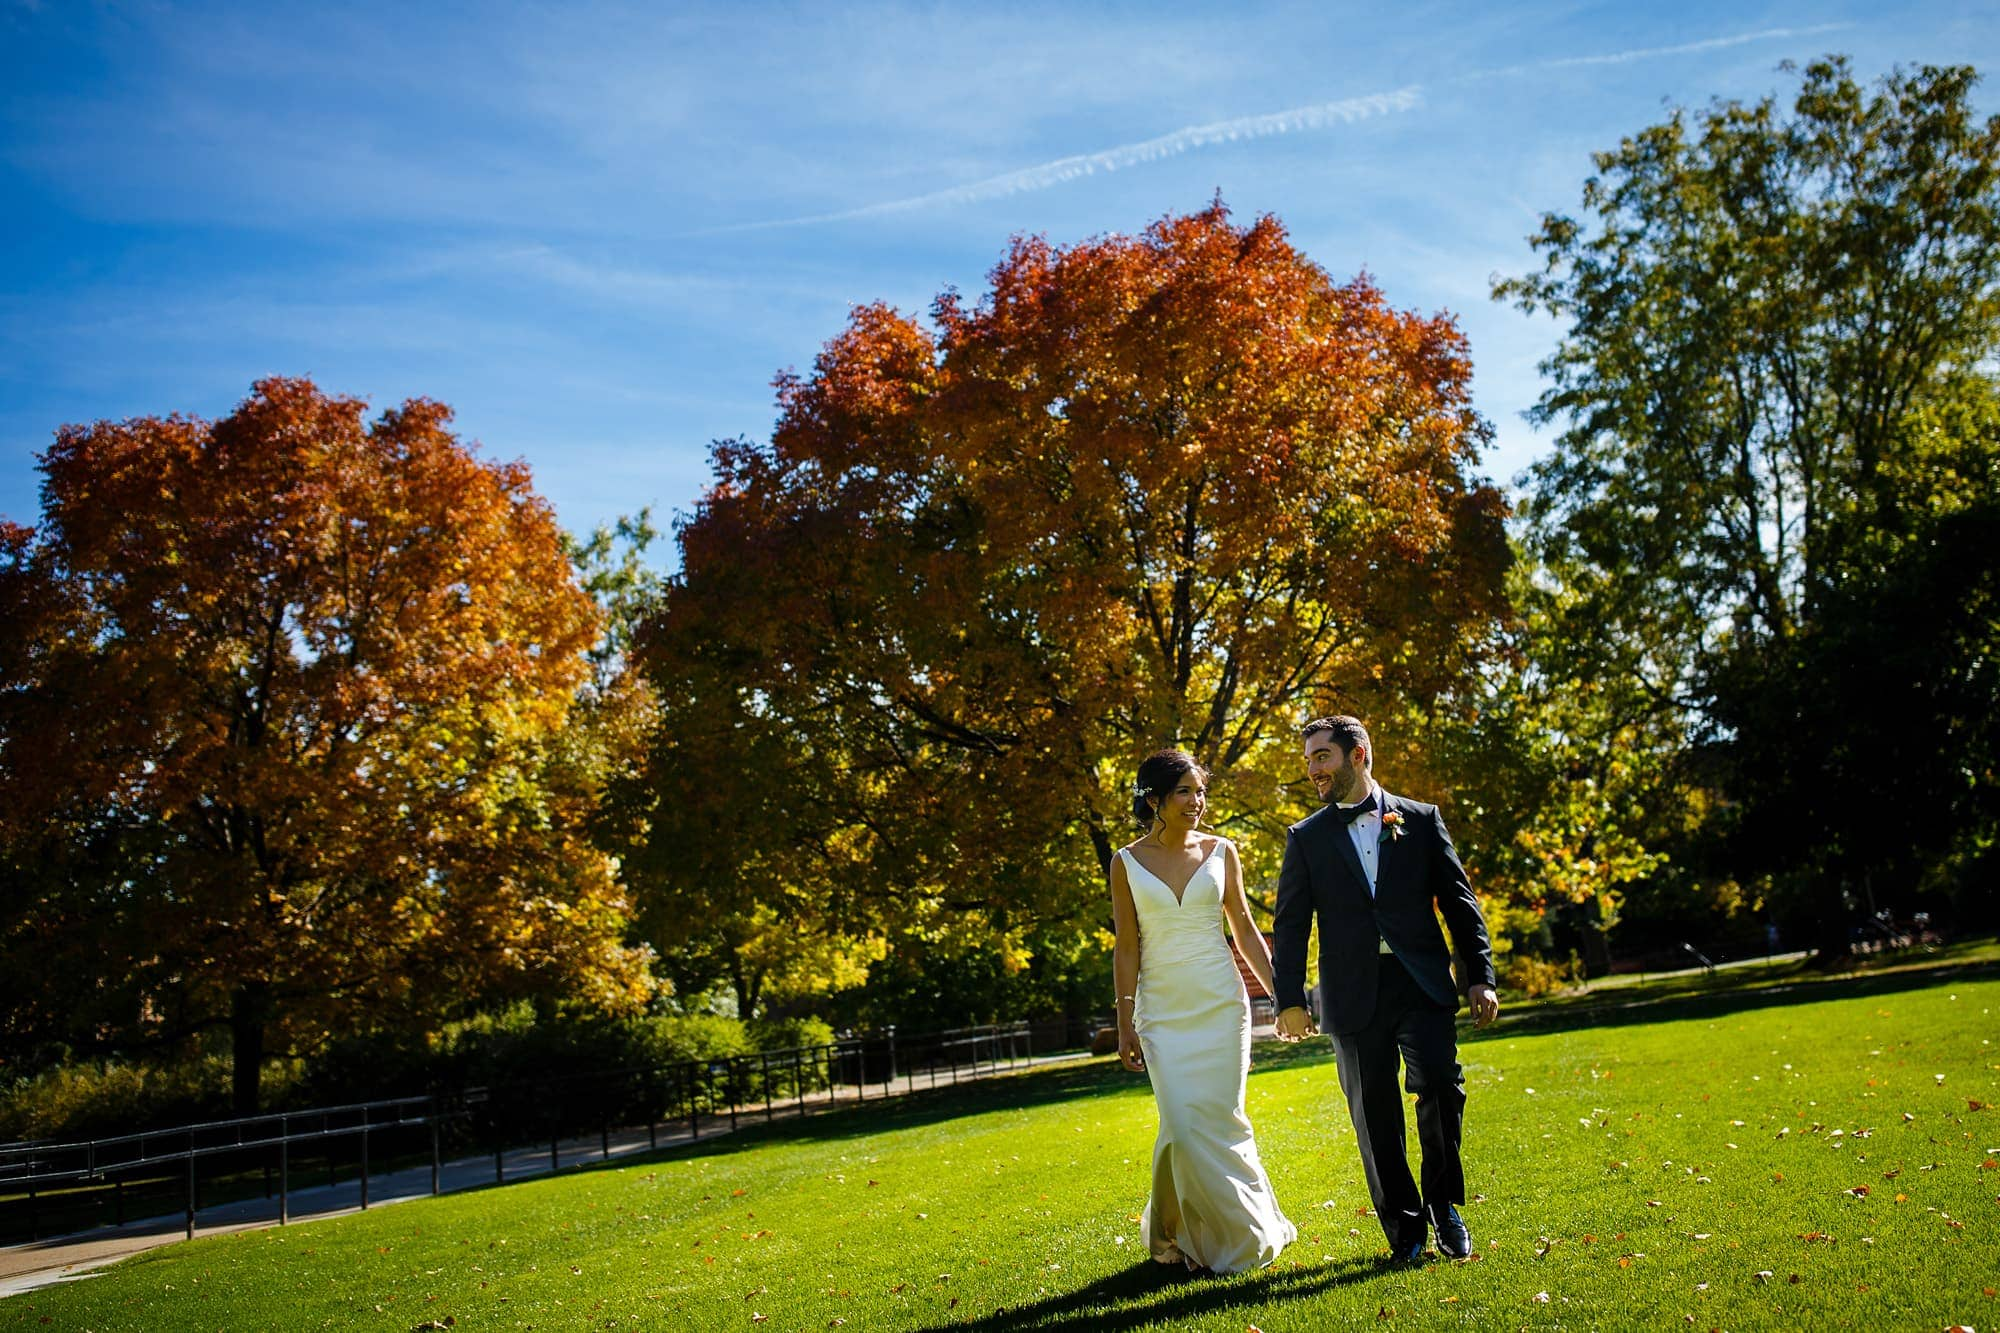 Megan and Bryan walk on Norlin Quad on the University of Colorado campus before their fall wedding